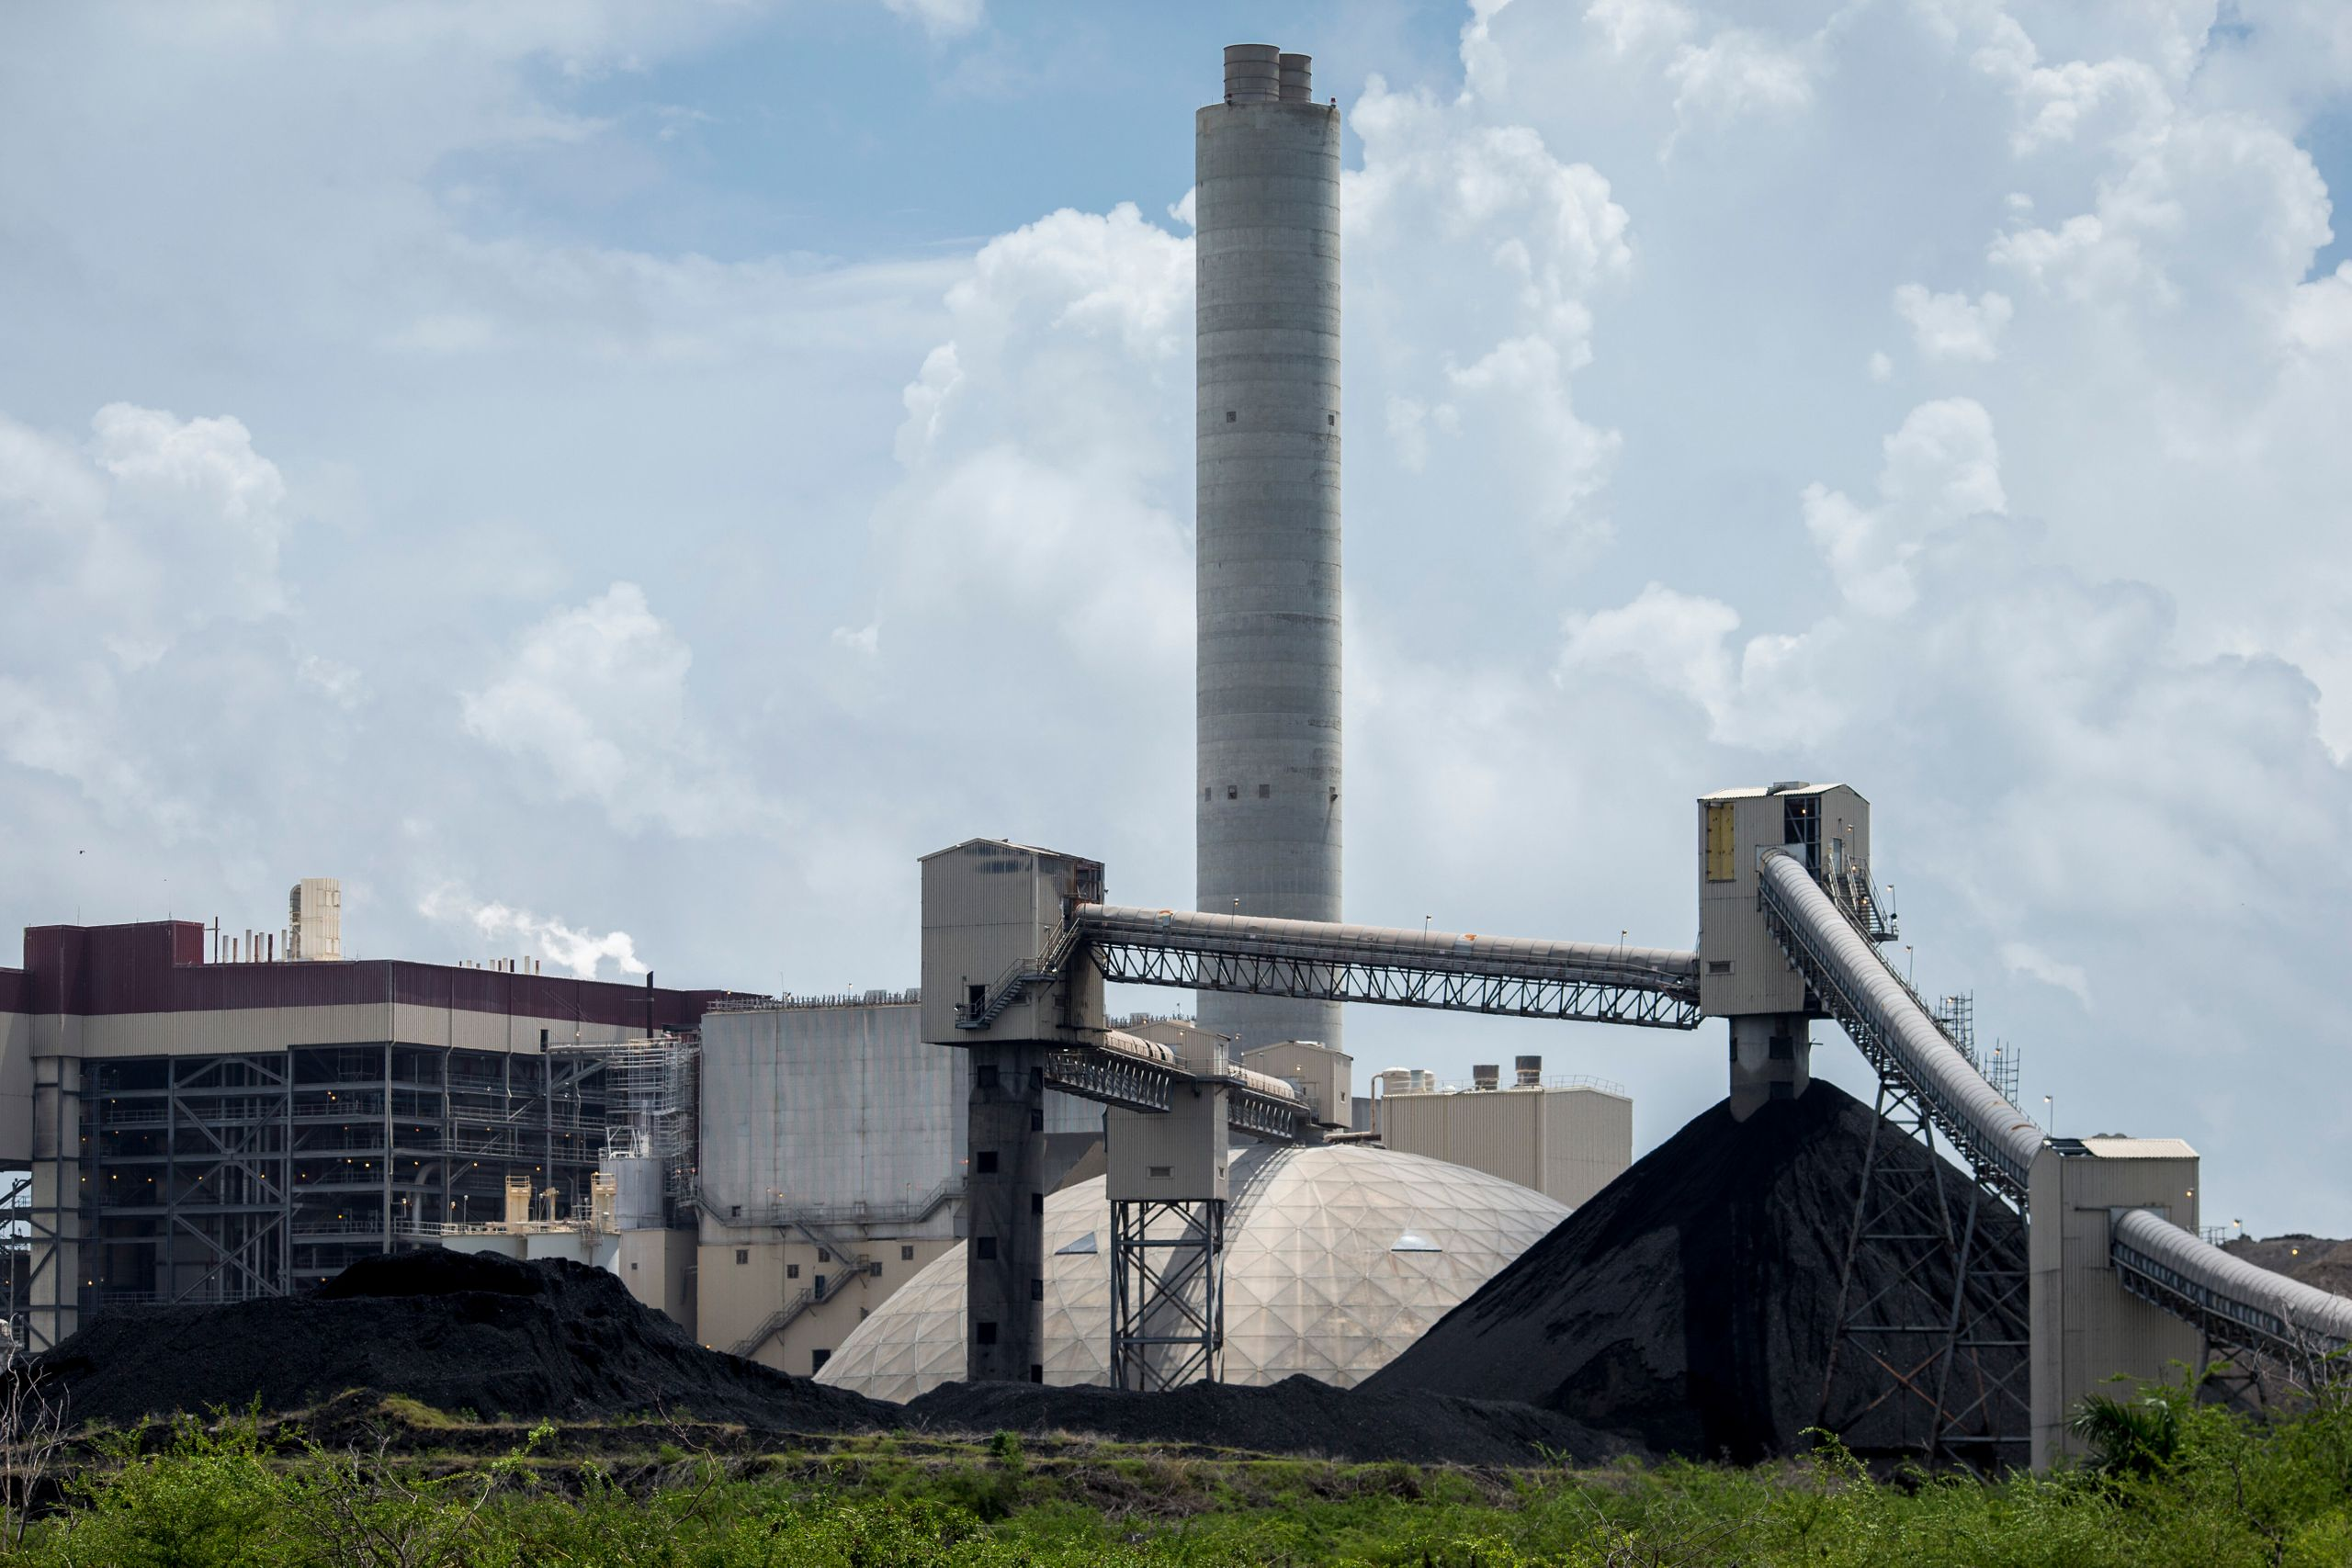 The AES coal-fired power plant in Guayama.